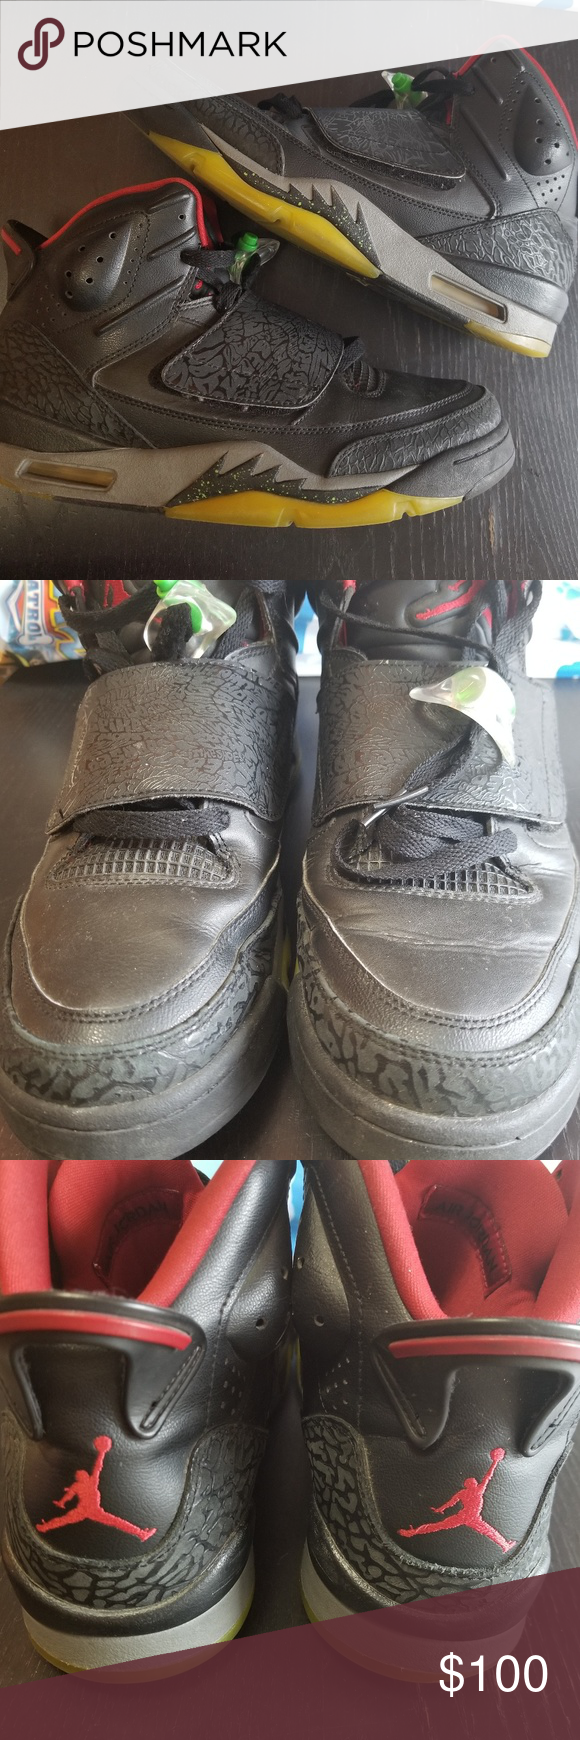 outlet store d8a59 1b758 Jordan Son of Mars Marvin the Martian Sneakers Pre-owned and in good  condition! Jordan Son of Mars Marvin the Martian Sneakers. Black, red,  green and gray.